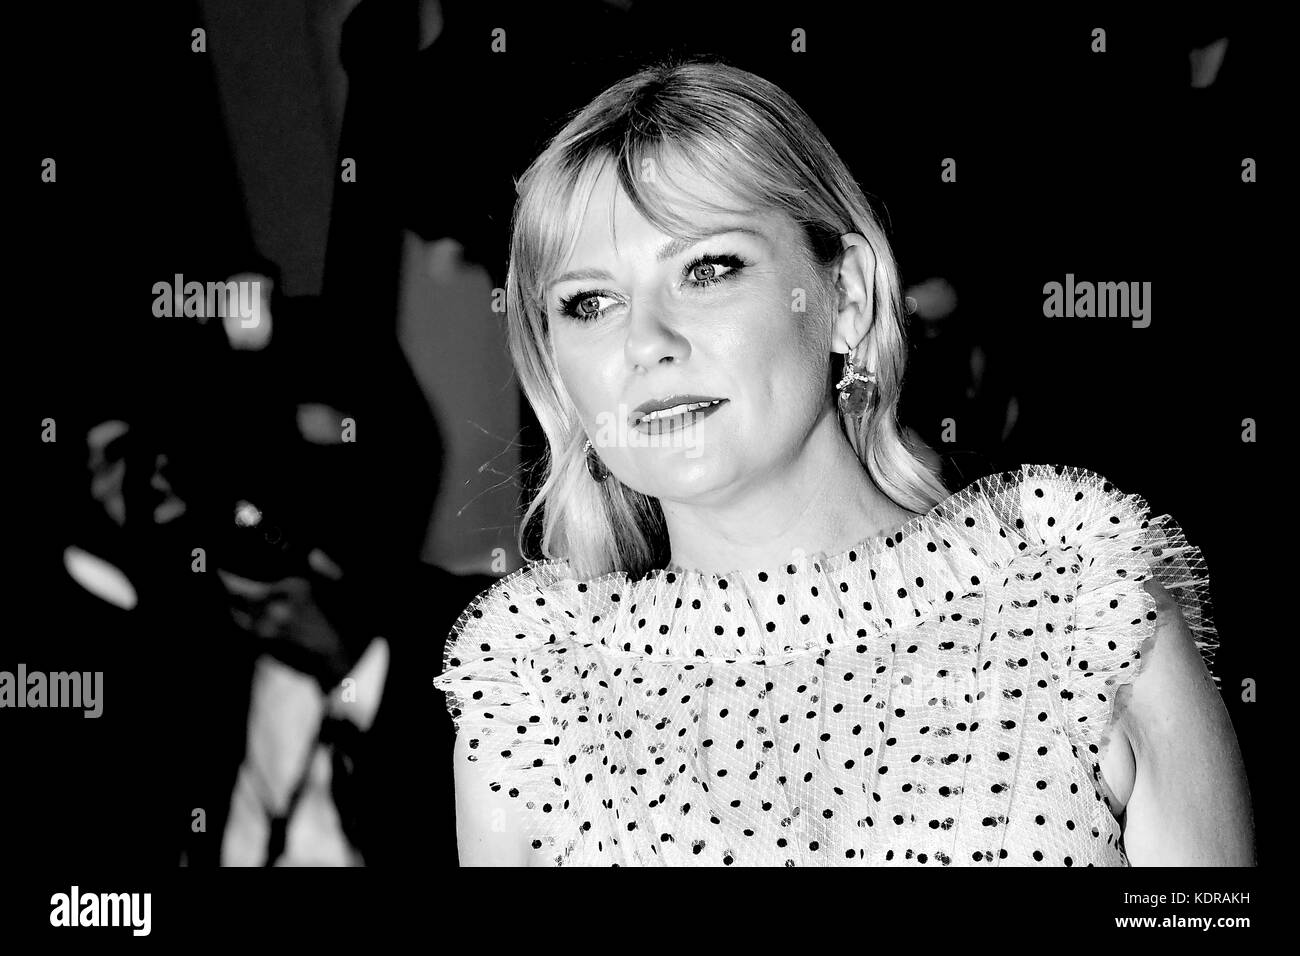 American actress Kirsten Dunst attends the premiere for Woodshock during the 74th Venice Film Festival in Venice, - Stock Image